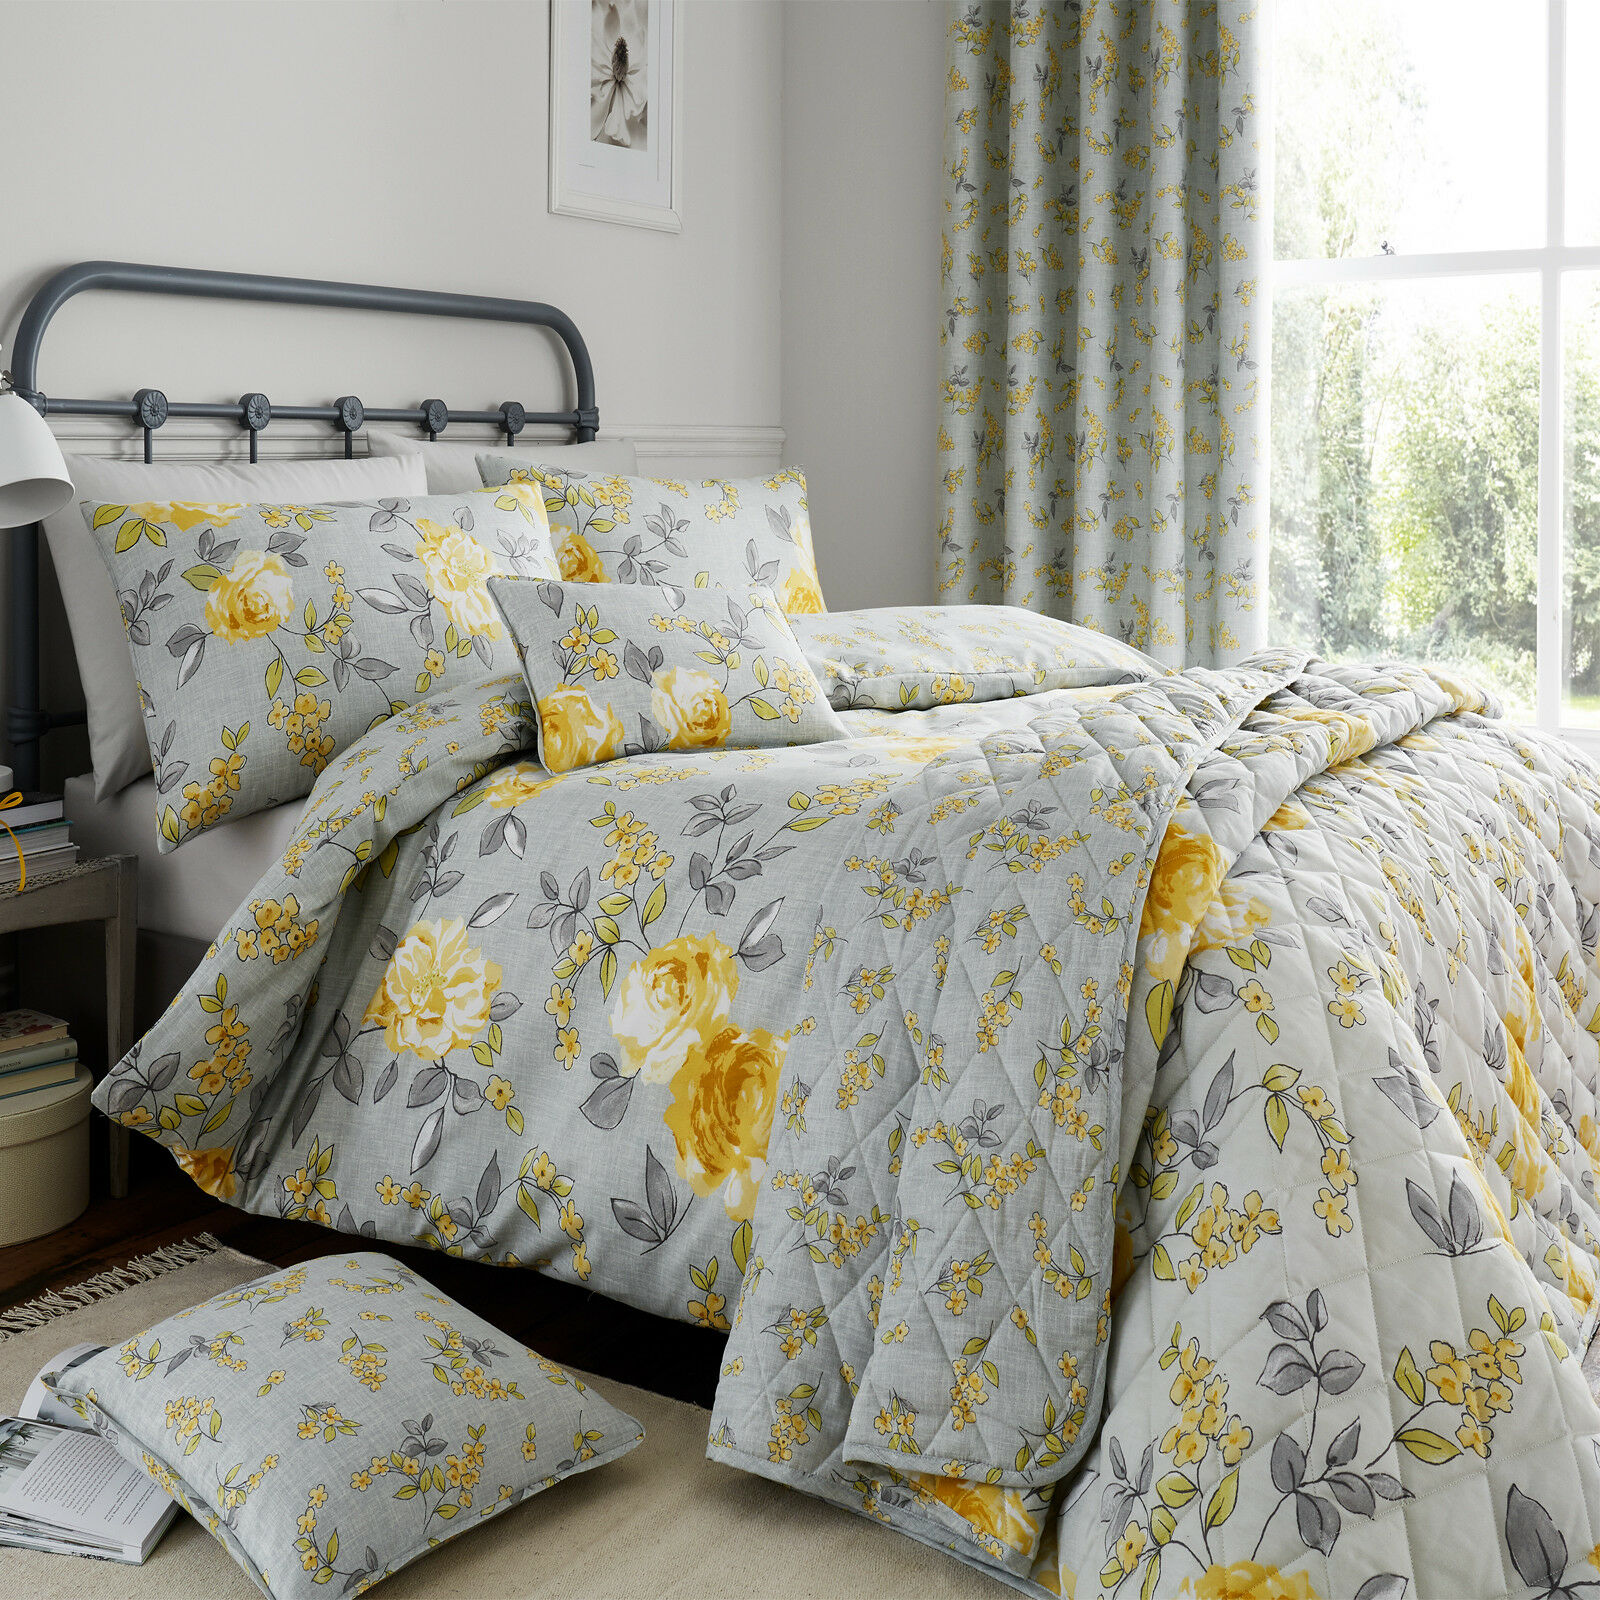 Cotton Sateen Delicate Floral Duvet Cover And Pillowcase Set